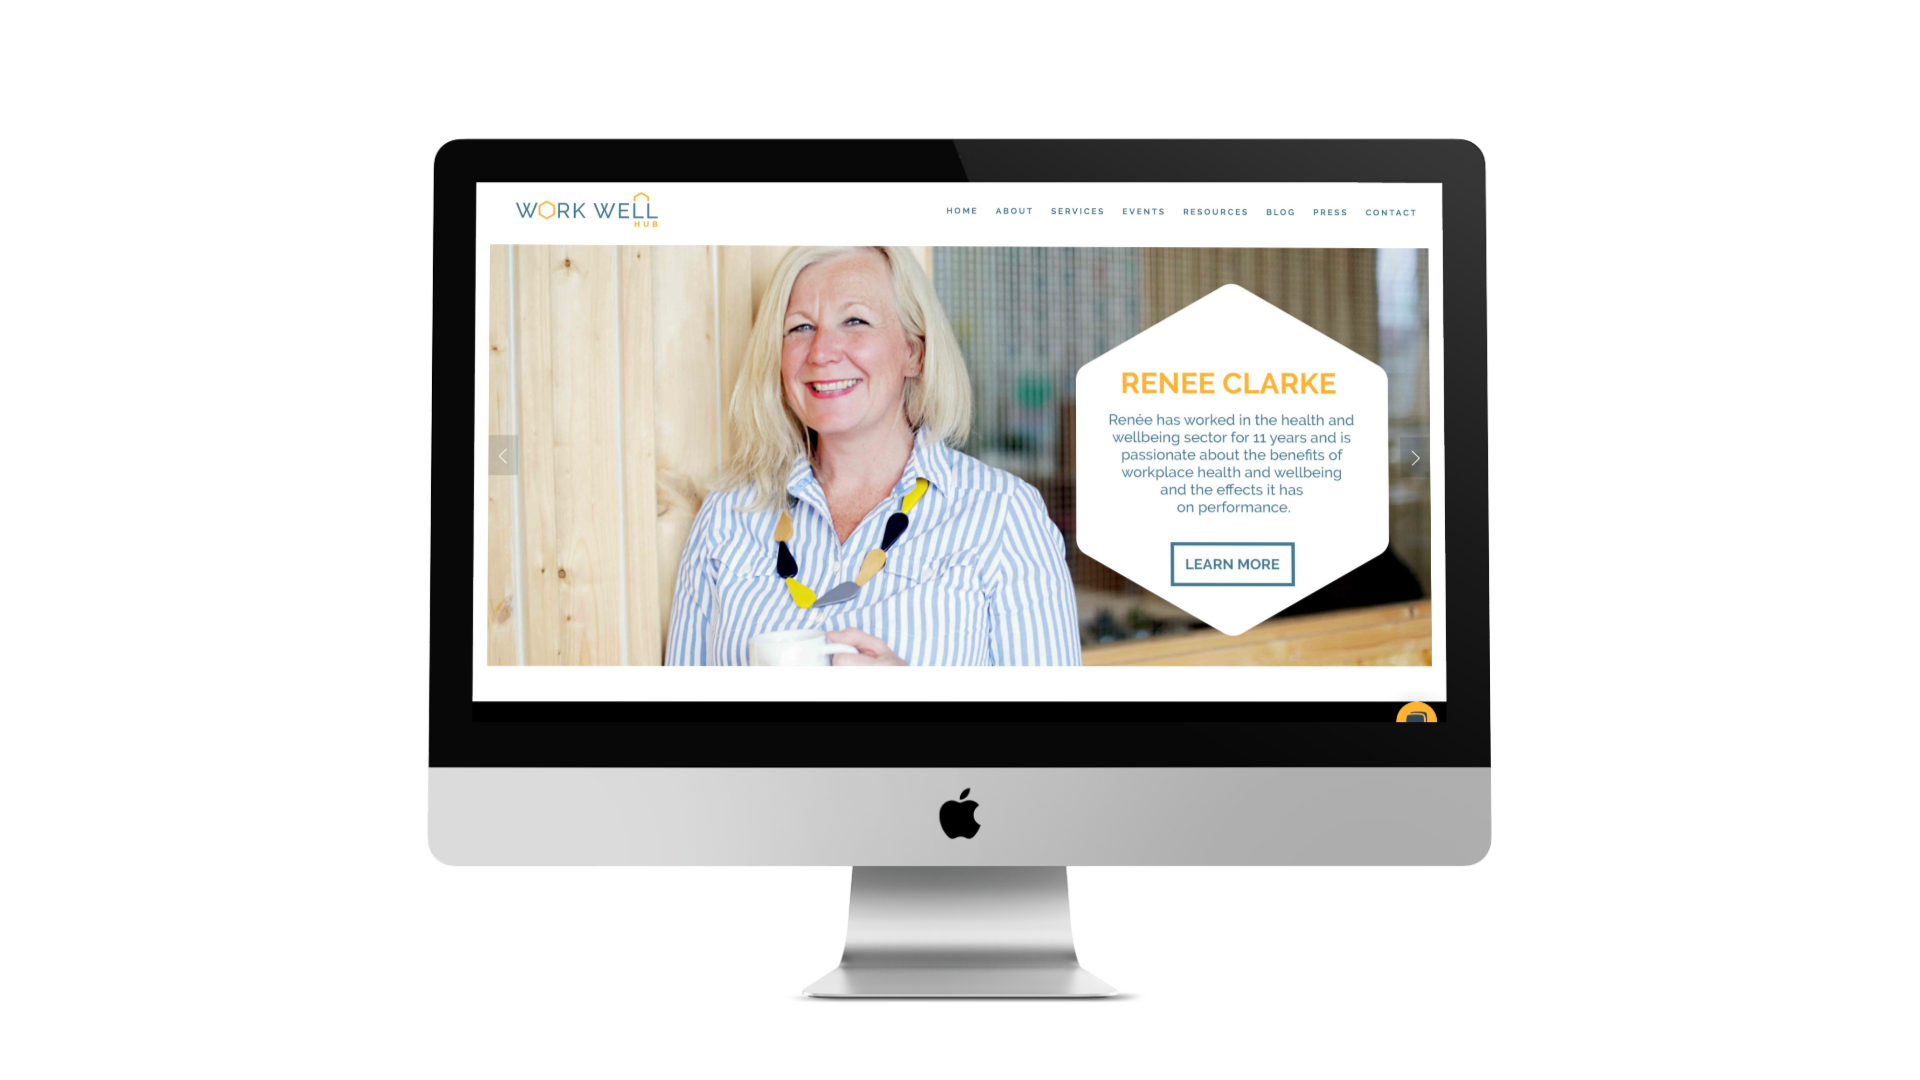 Web Design in Bristol for Sarah Cook by Visuable